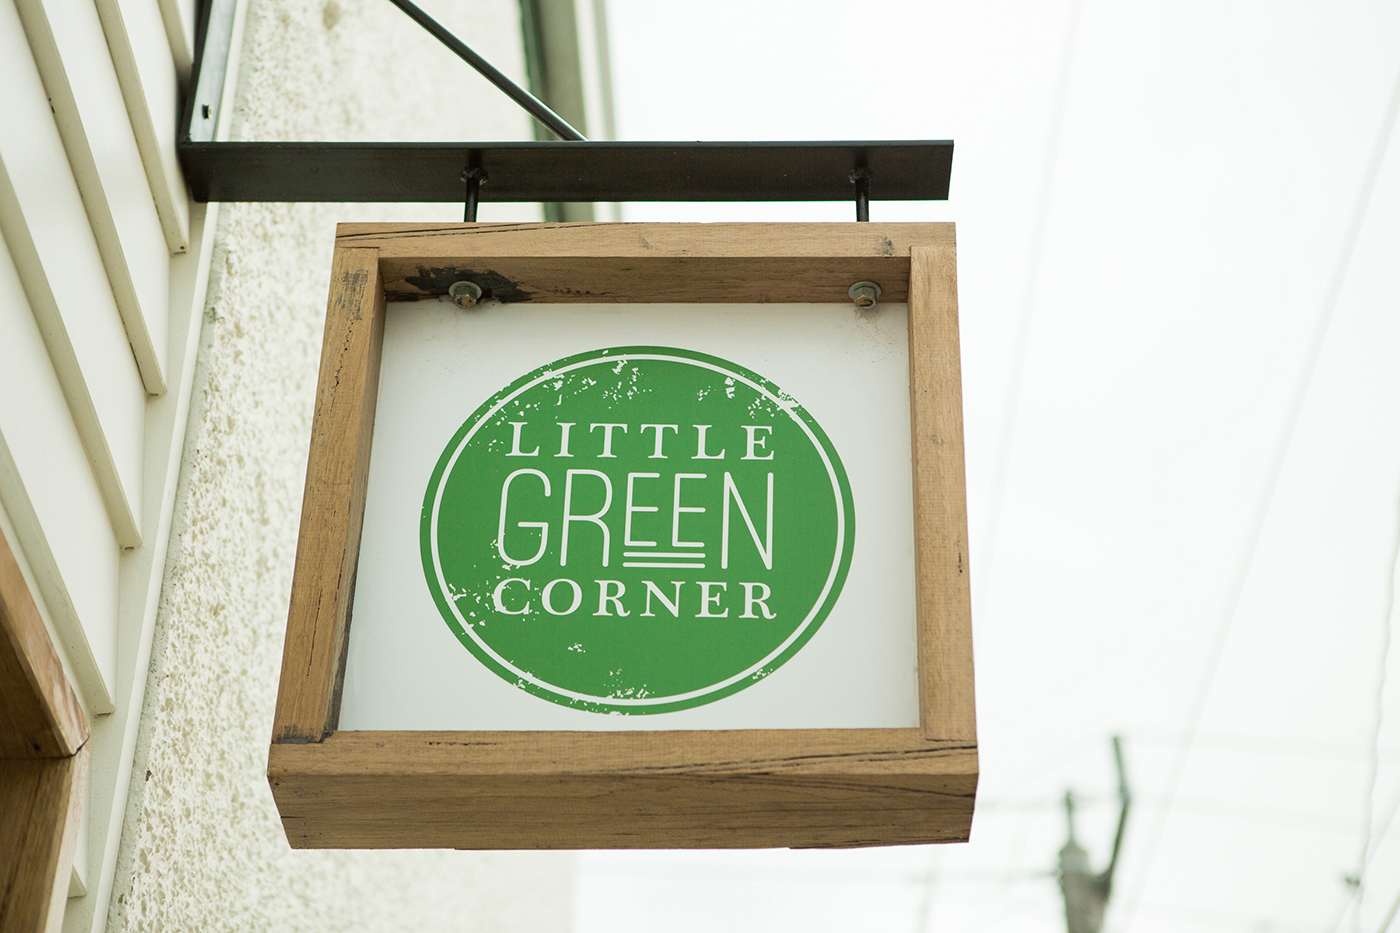 LittleGreenCorner08